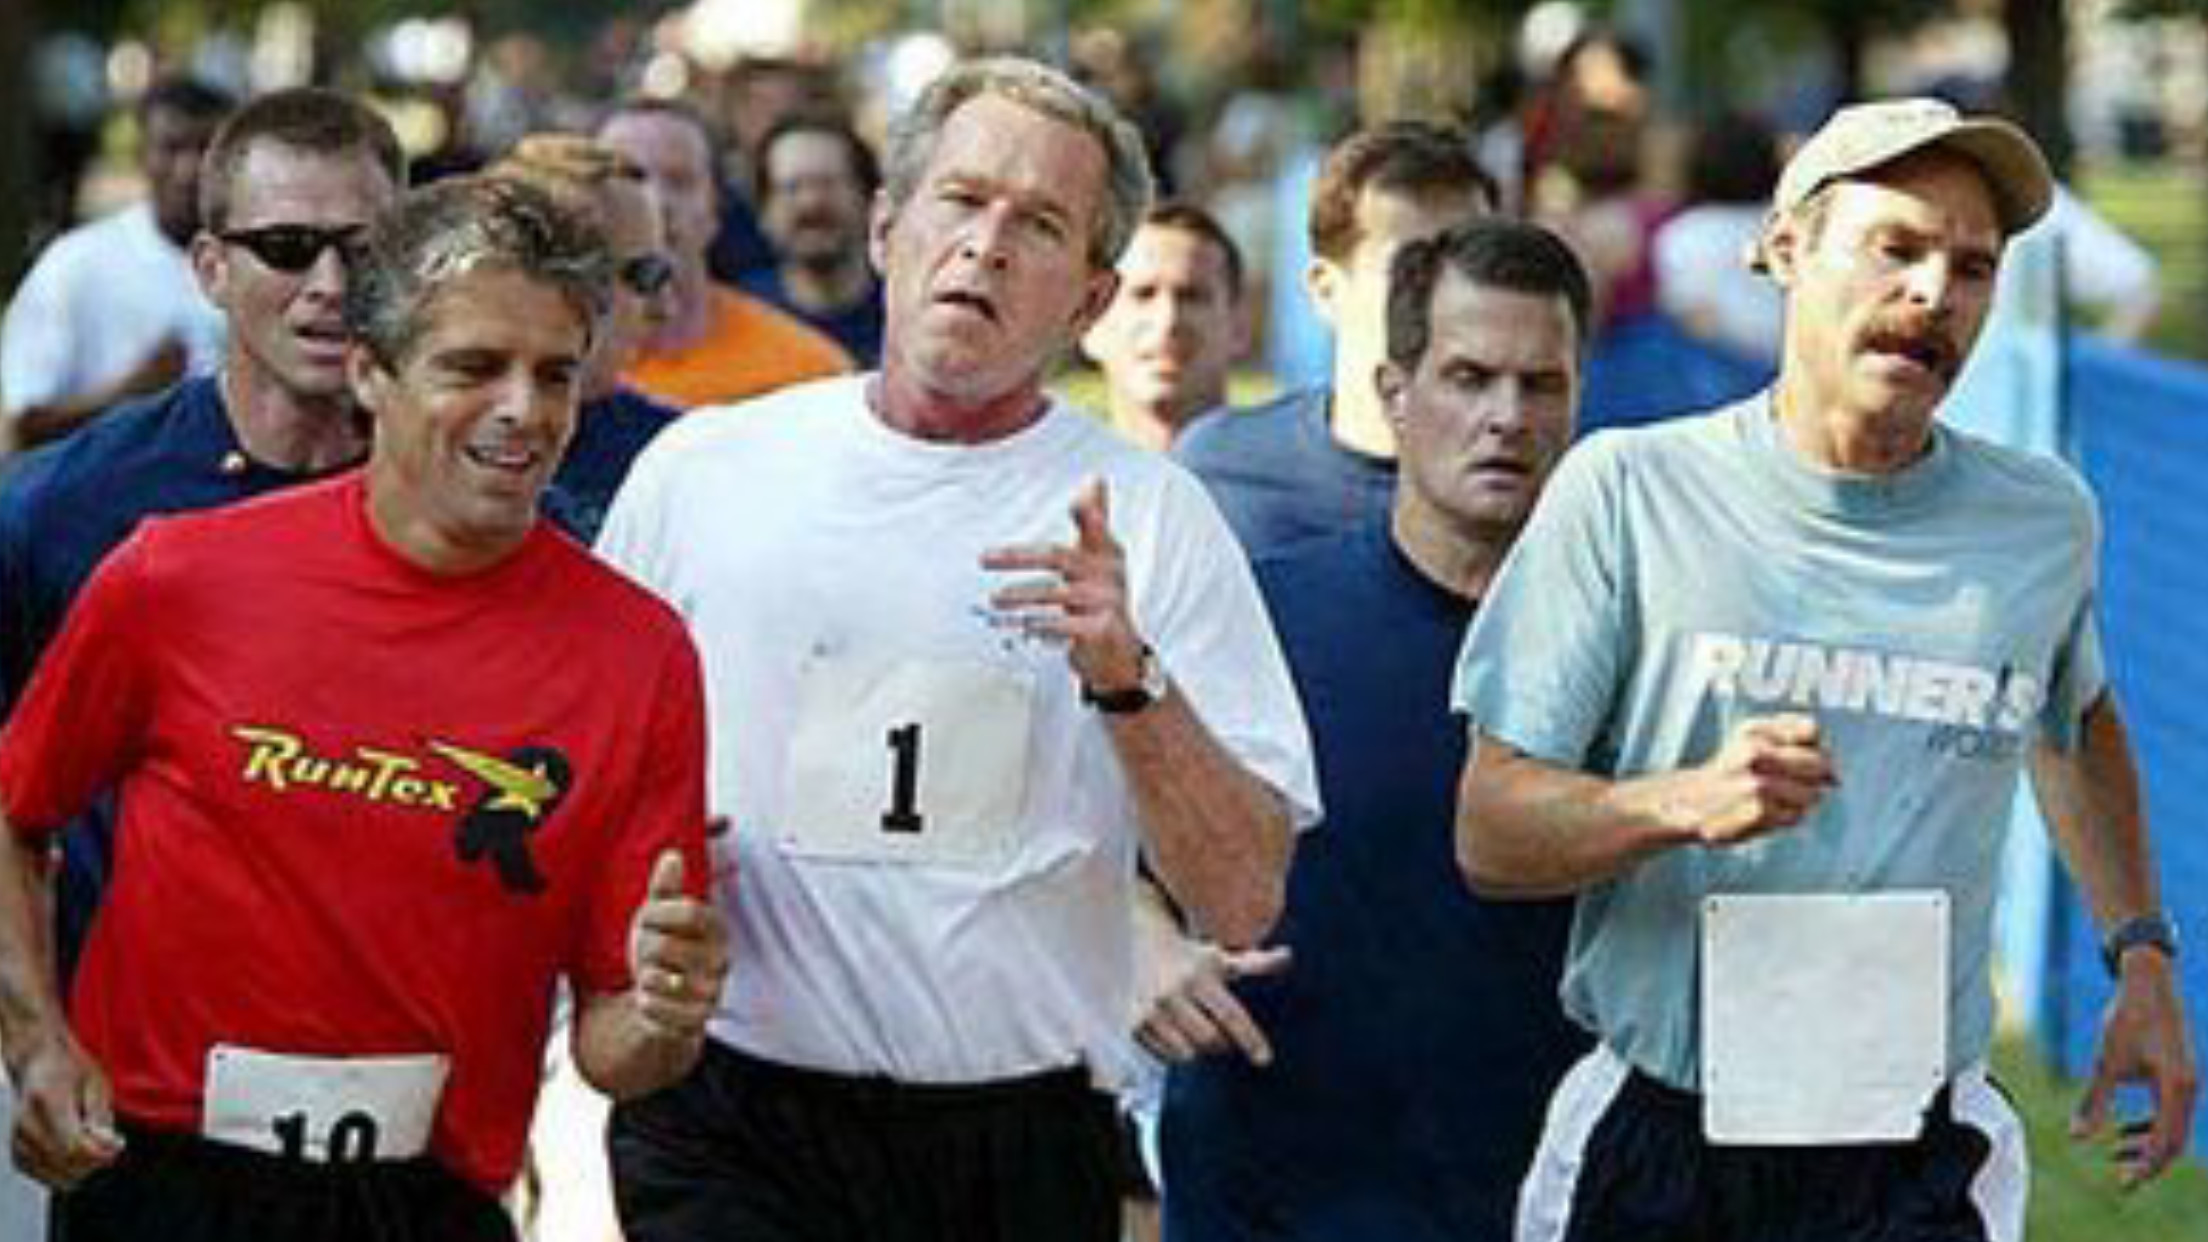 What is the fastest Marathon time run by a US President?